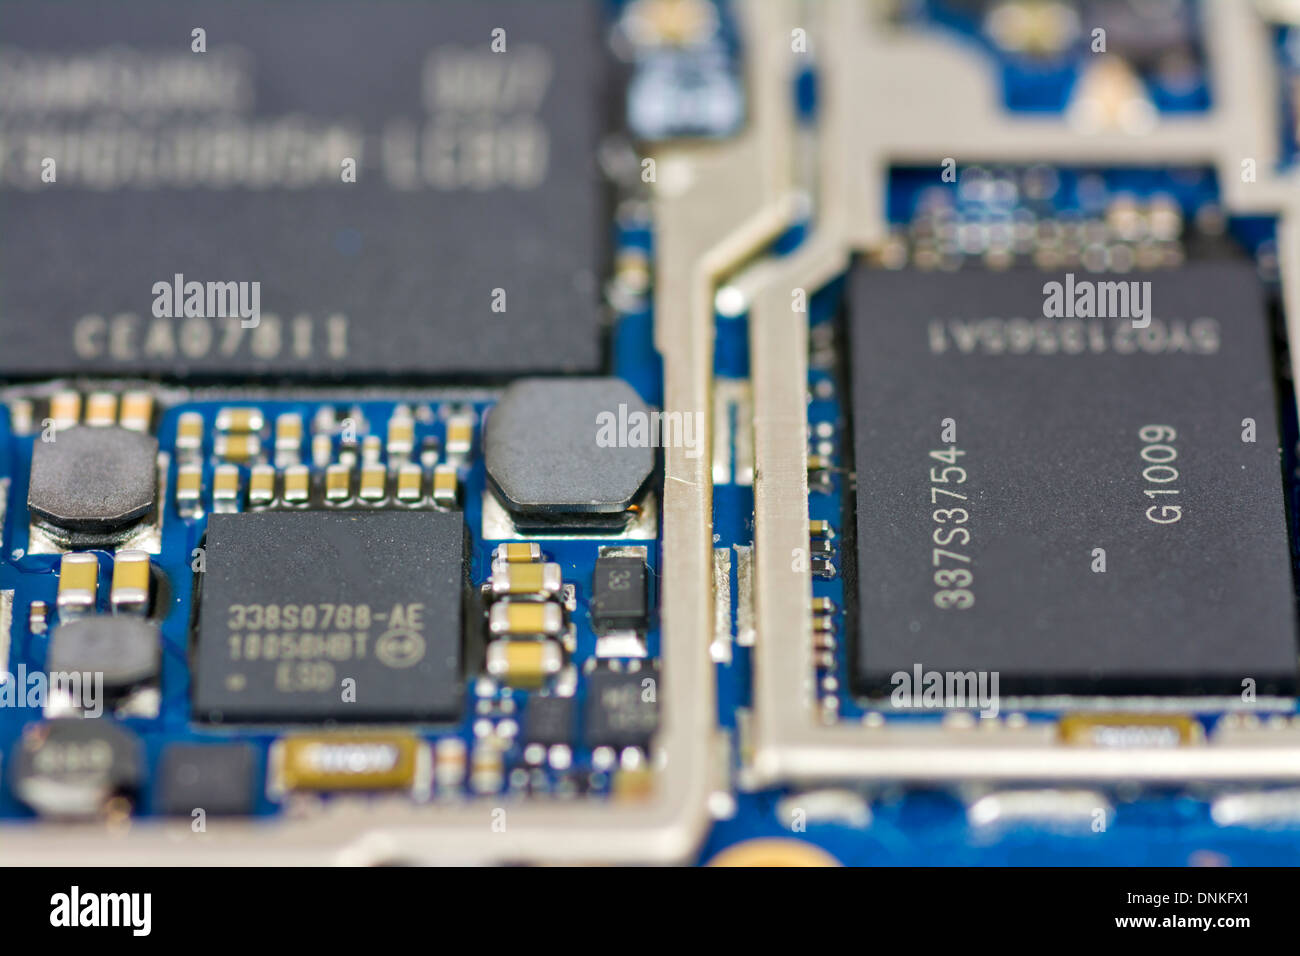 miniature circuit board with computer chips on it - Stock Image